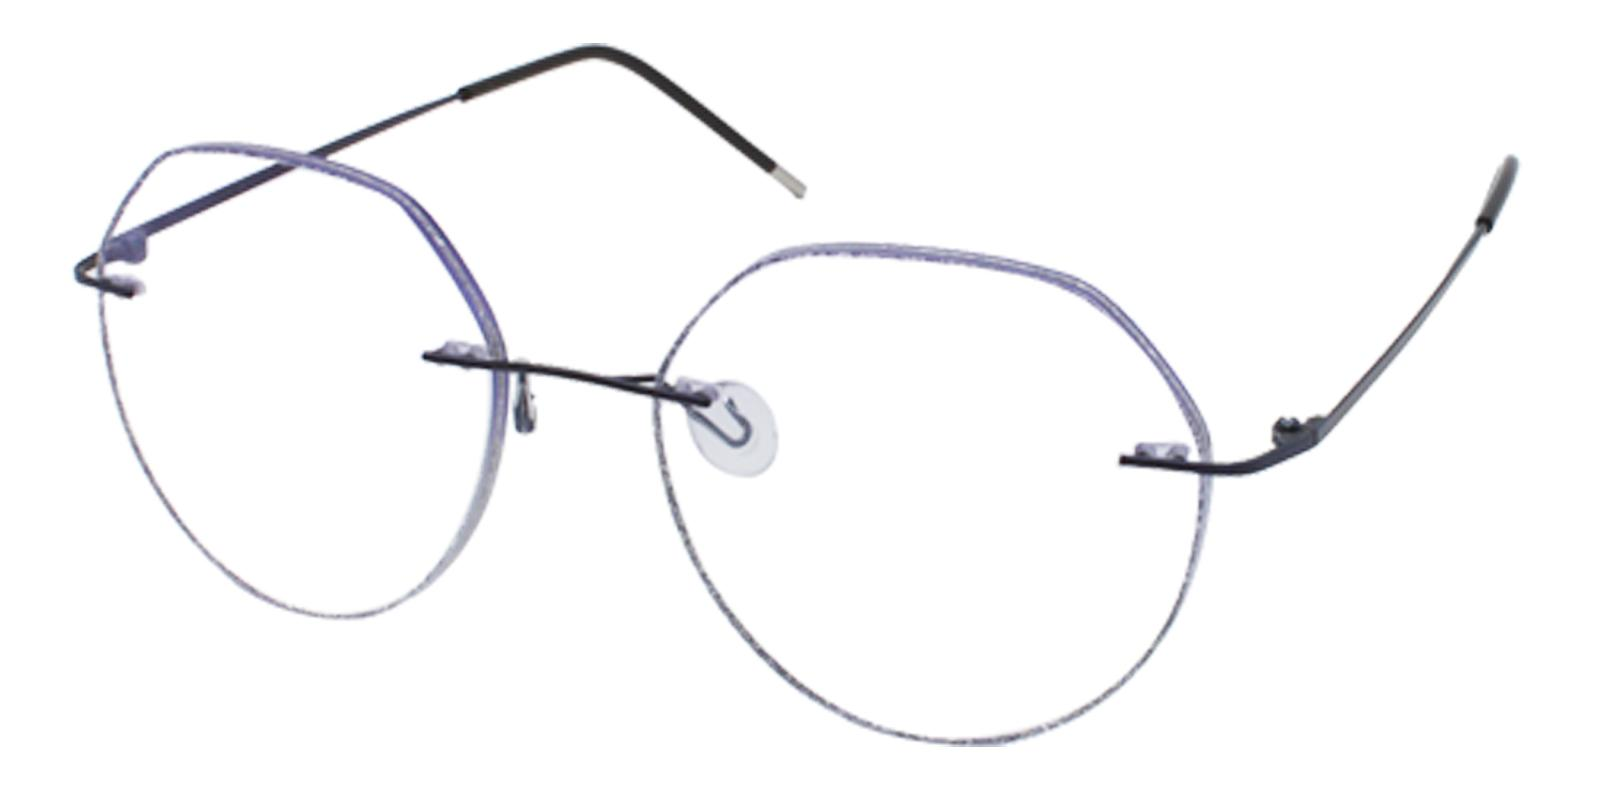 Piper Black Titanium NosePads , Eyeglasses Frames from ABBE Glasses